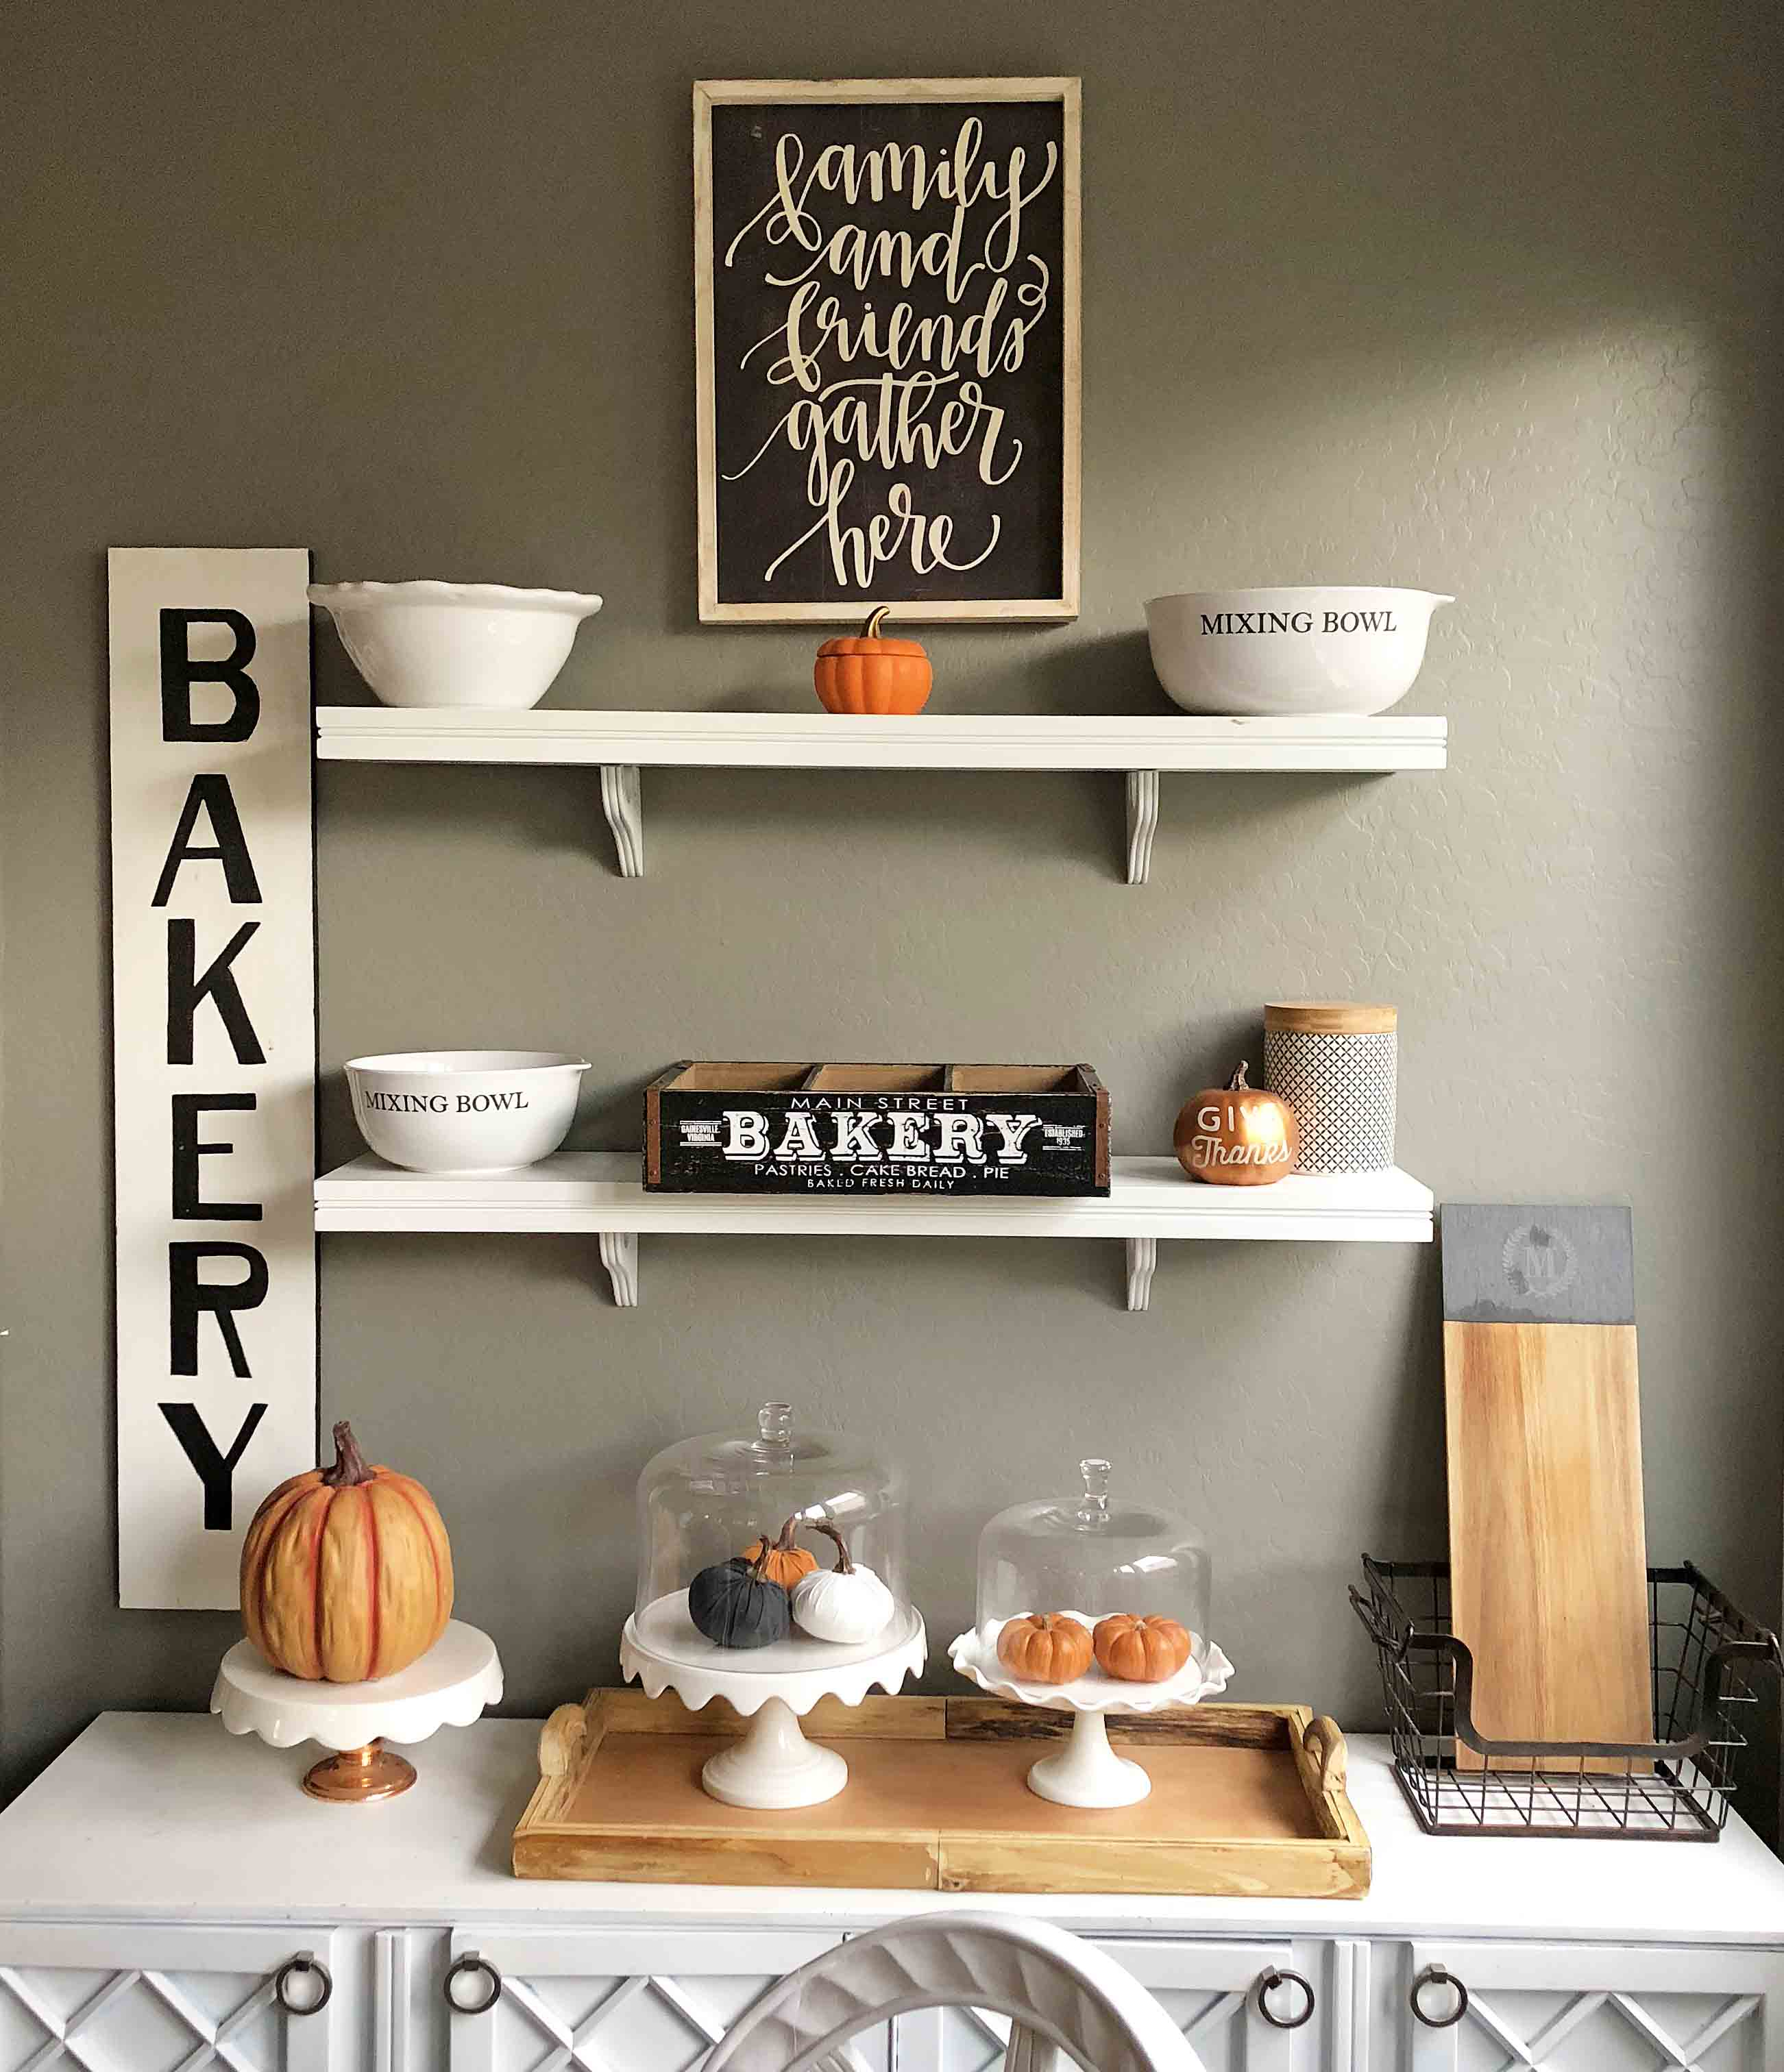 Kitchen Decor For Fall: Pumpkin Cupcakes With Salted Caramel Frosting + Fall Decor Ideas